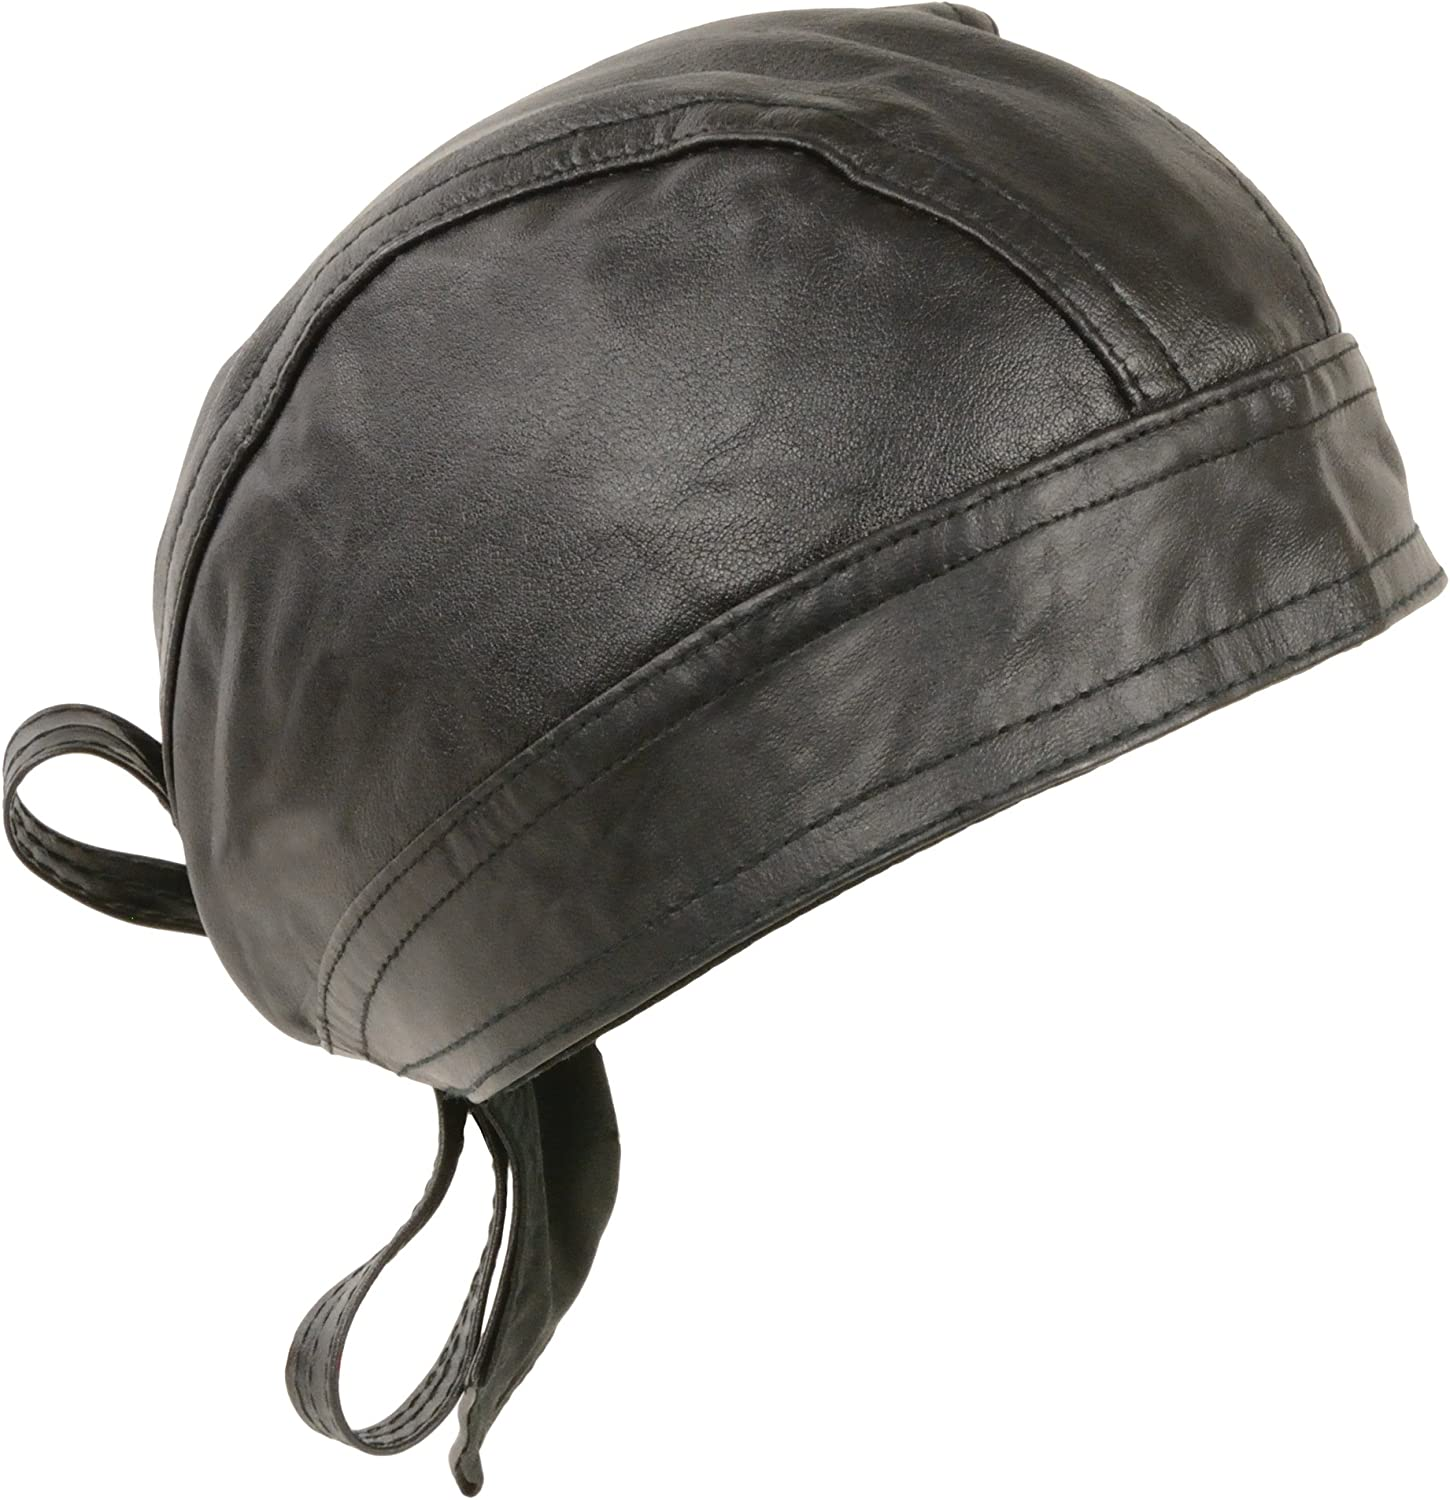 Amazon Com Unisex Leather Skull Cap Solid And Perforated Versions Black Solid Automotive